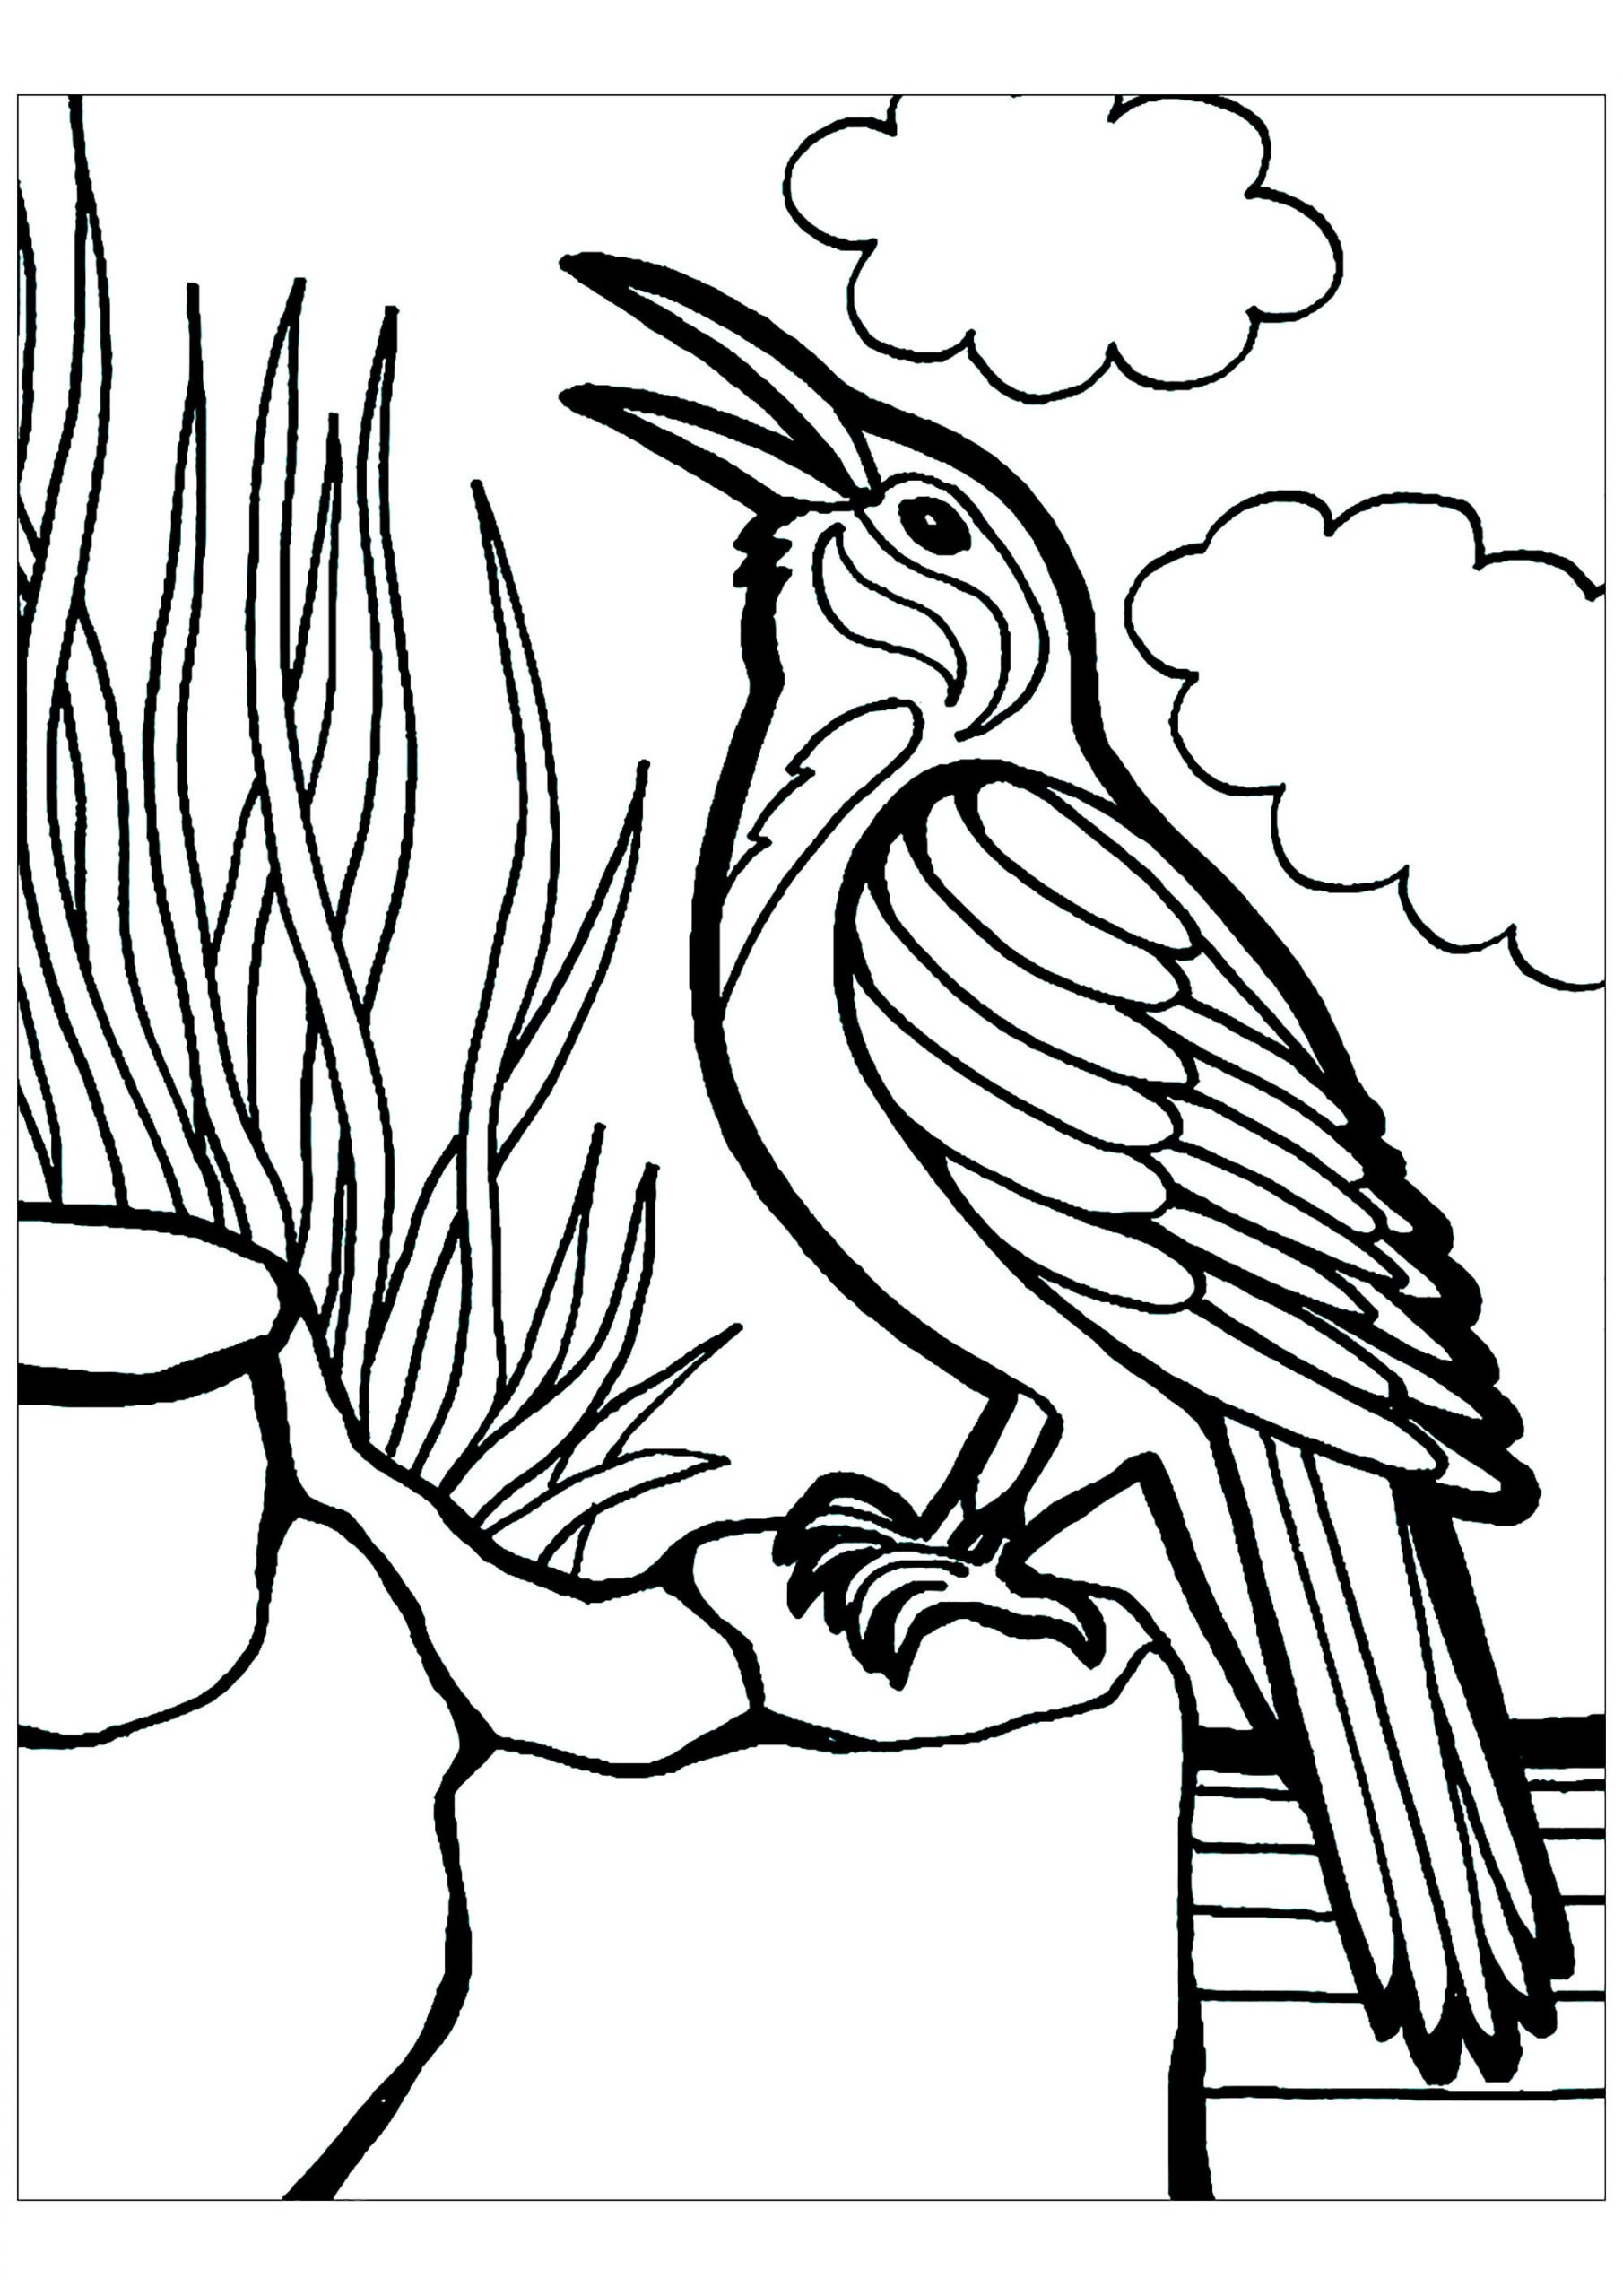 Children Coloring Page  Birds to print for free Birds Kids Coloring Pages